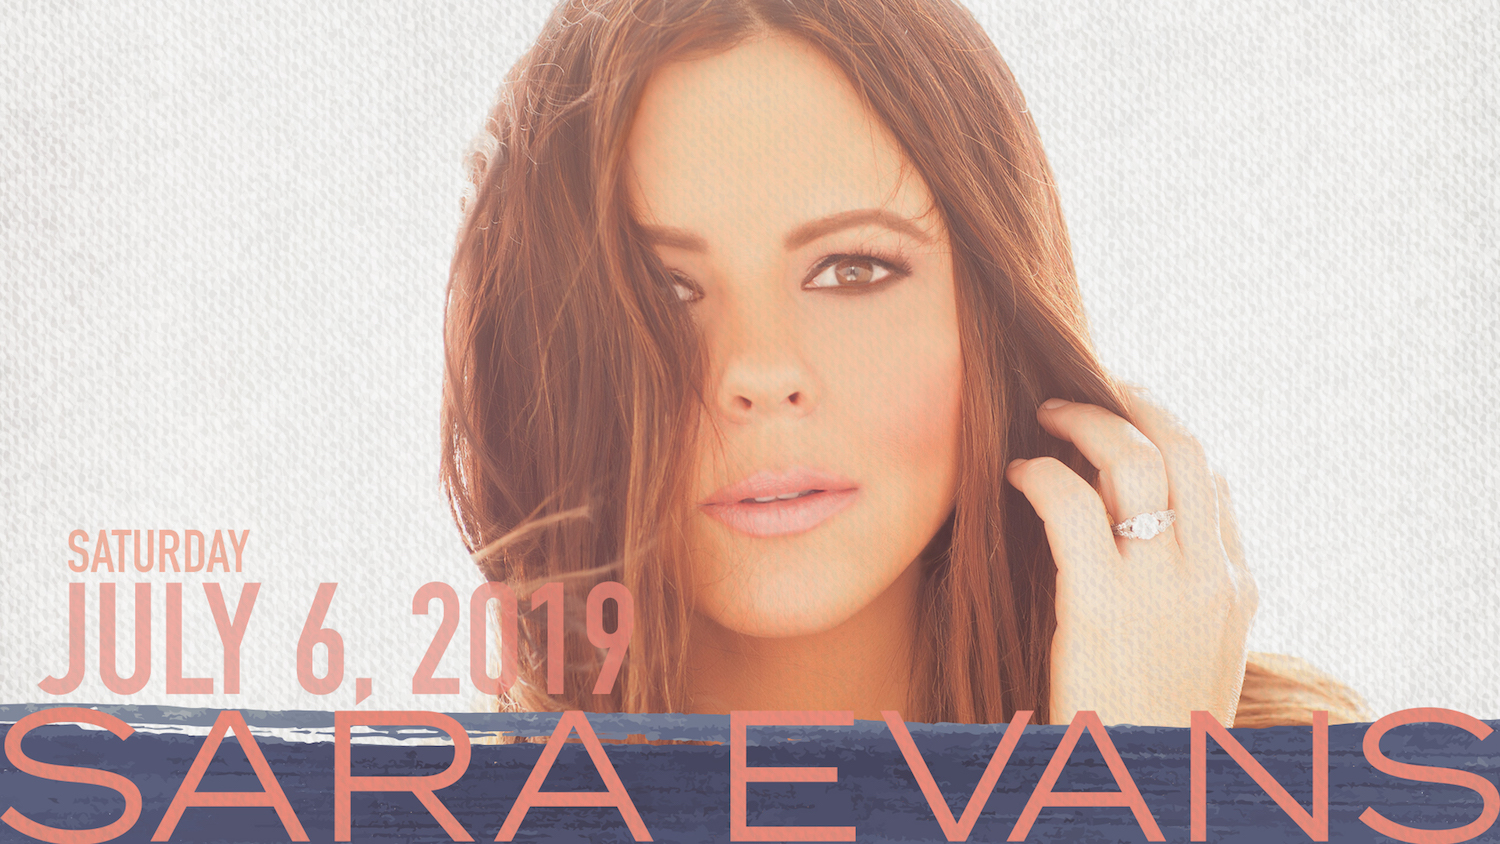 Tickets for Sara Evans in Eldon from ShowClix